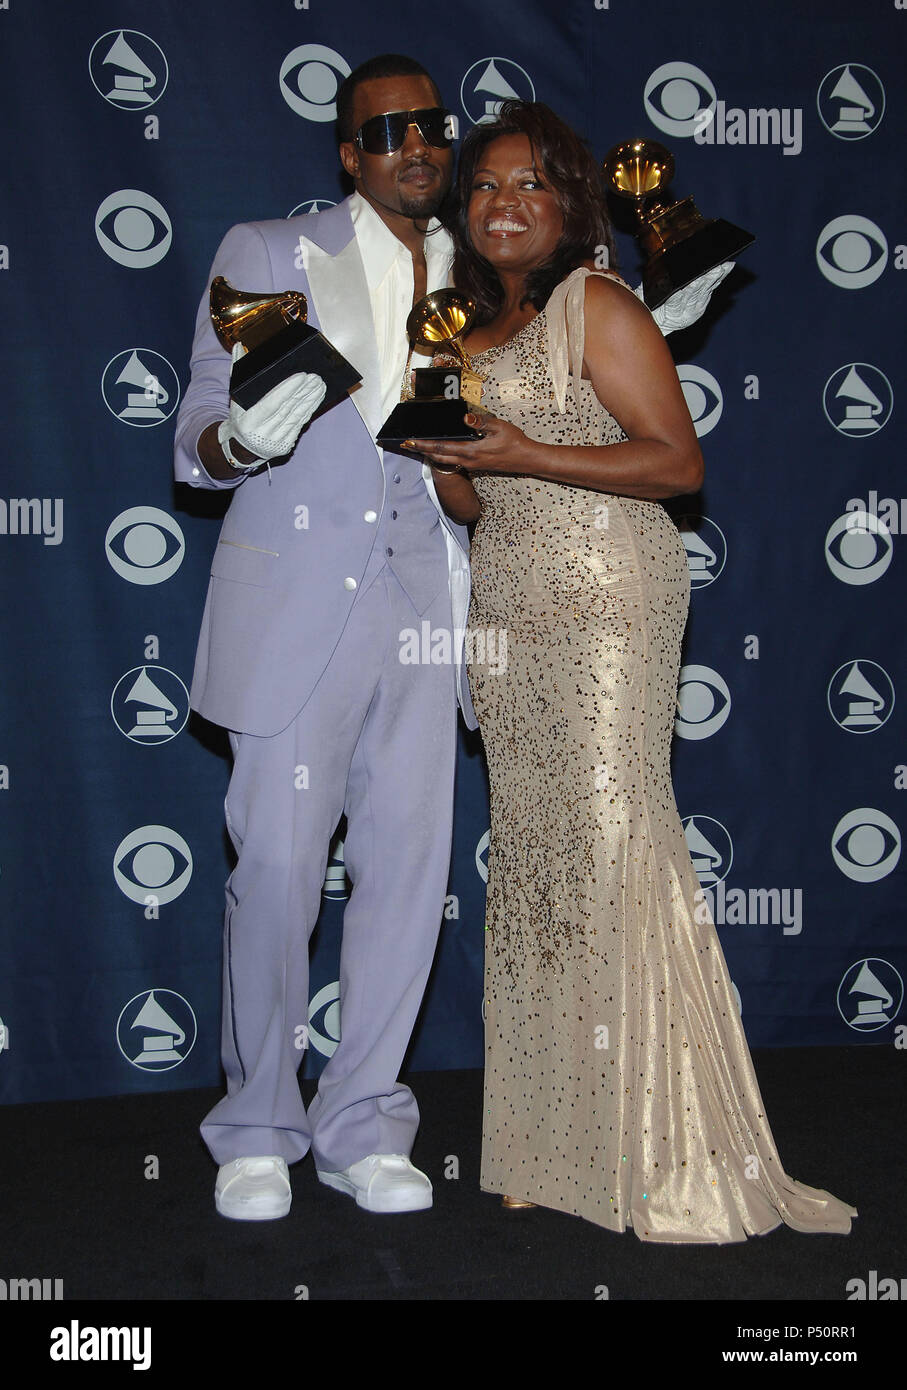 Kanye West and mom backstage at the 48th Grammy Awards at